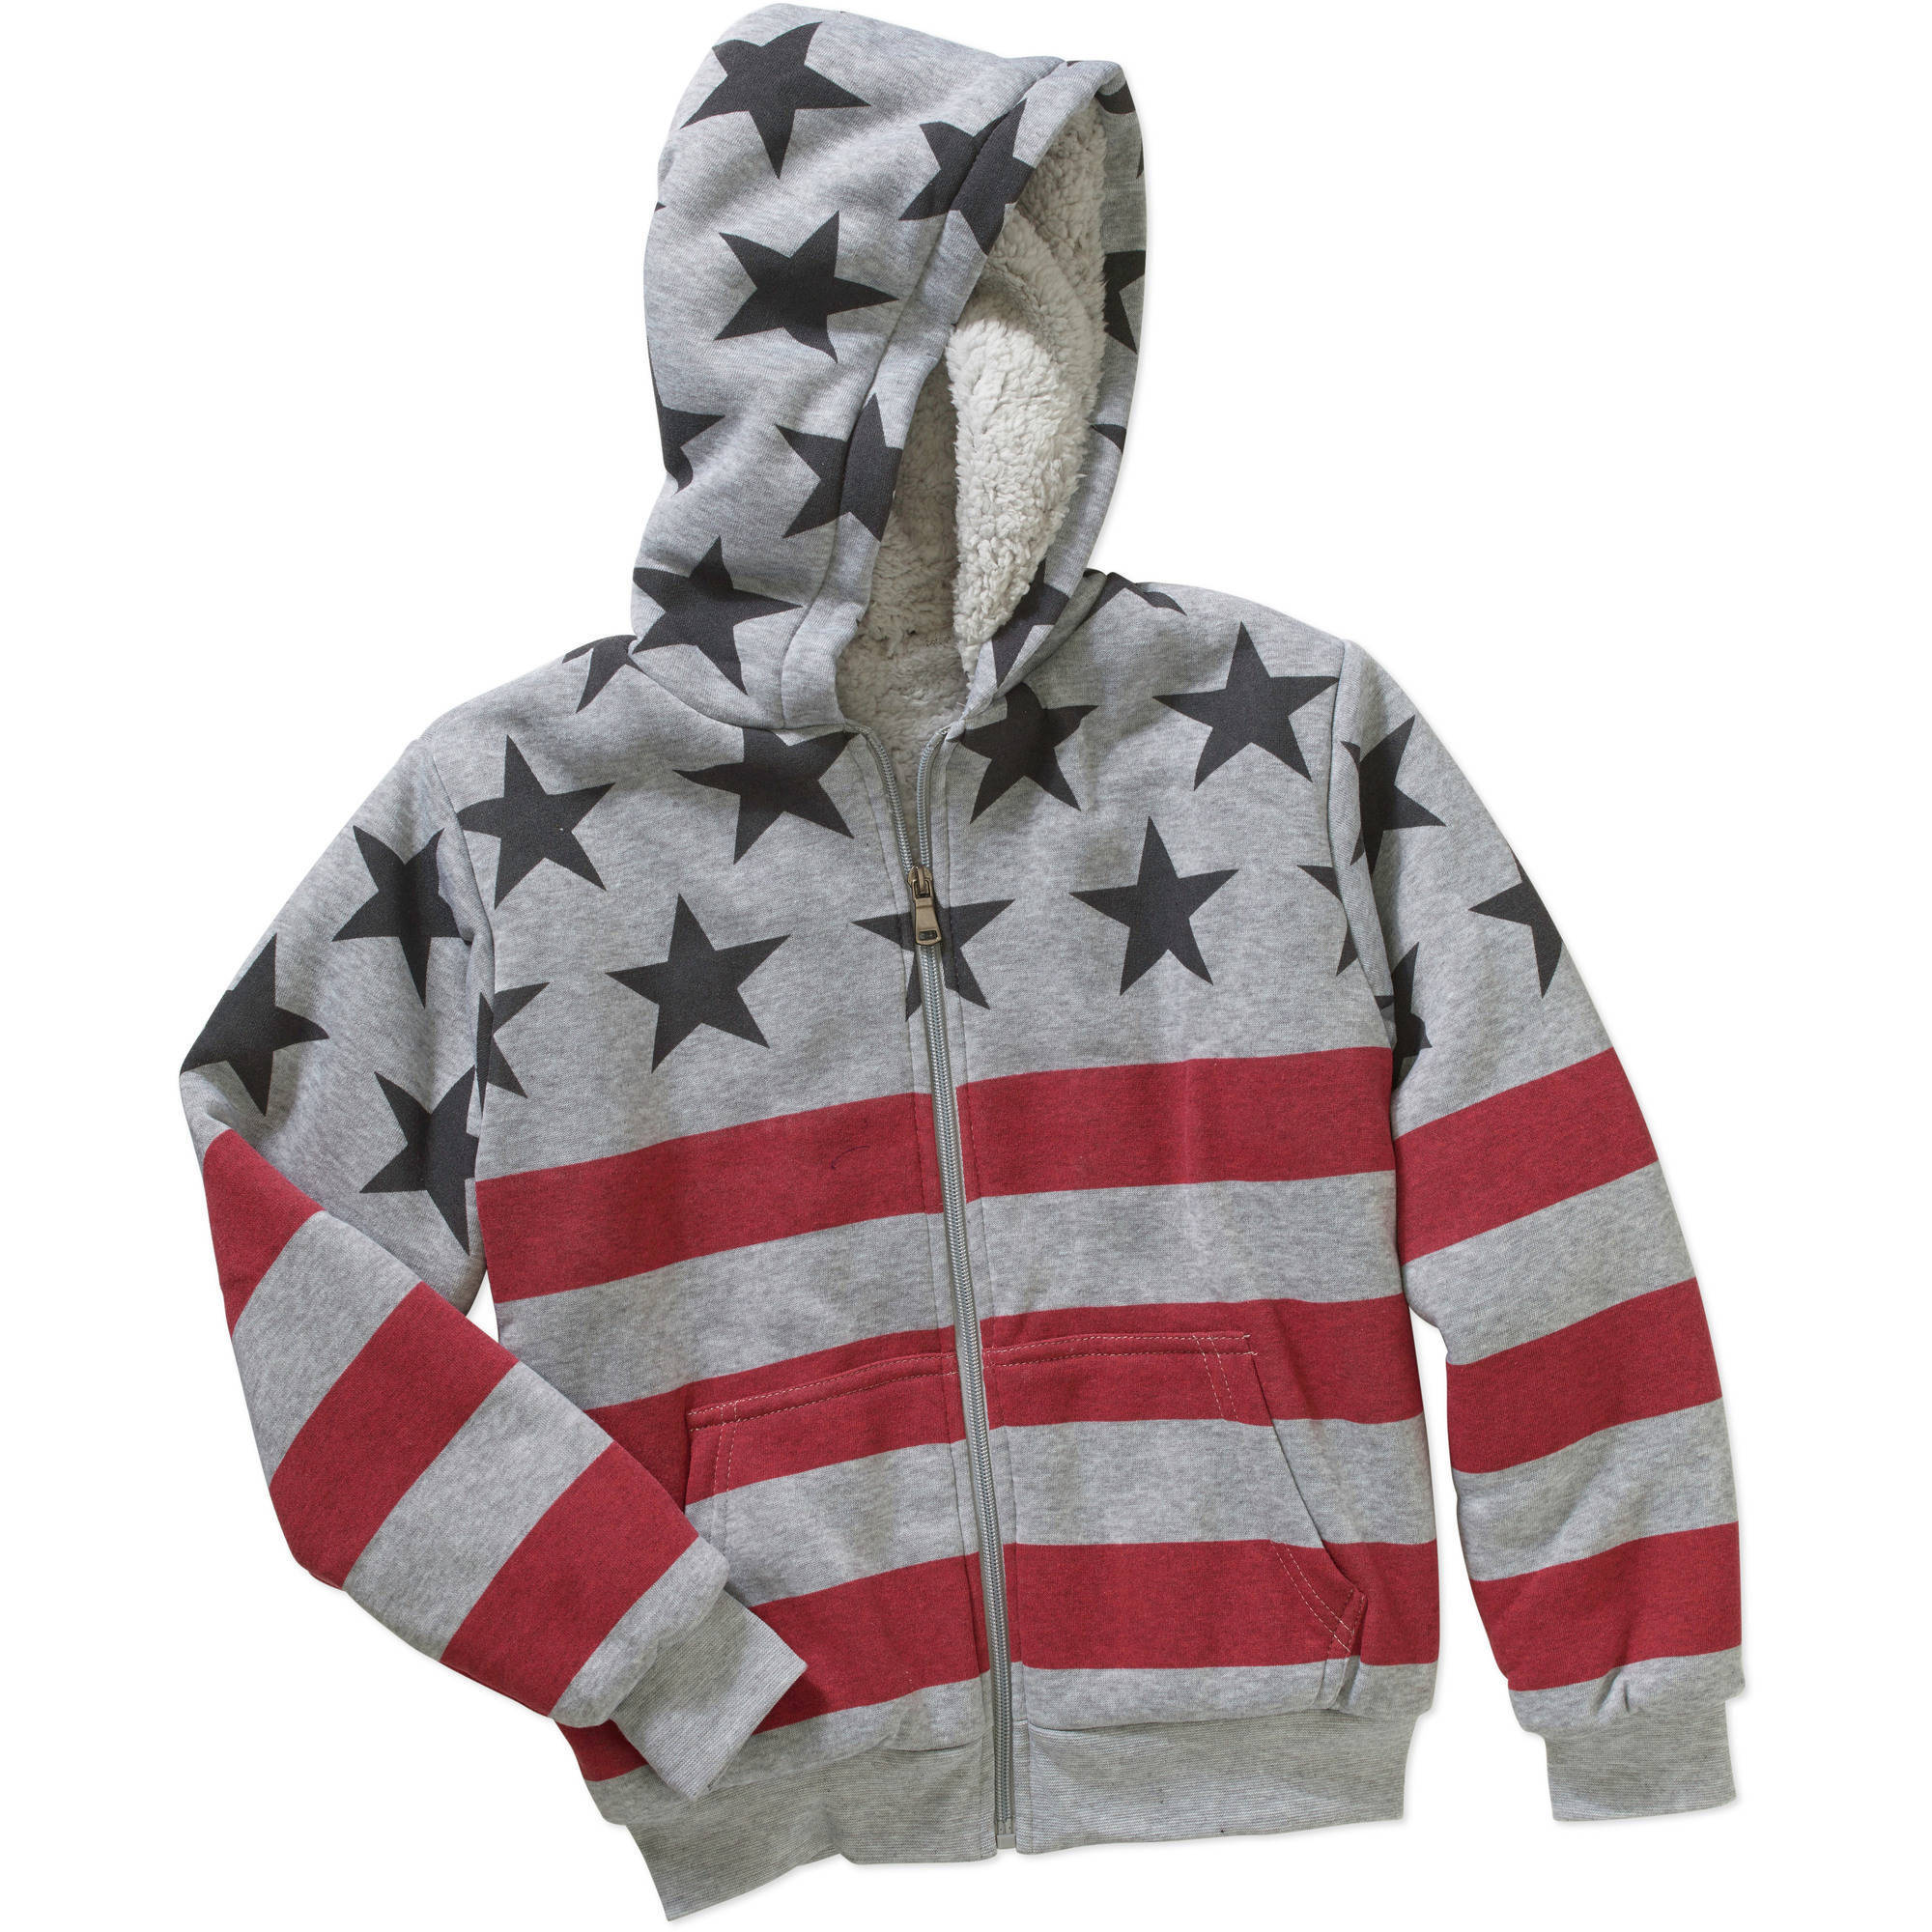 Bocini Boys' Fleece Zip Up Hooded Jacket